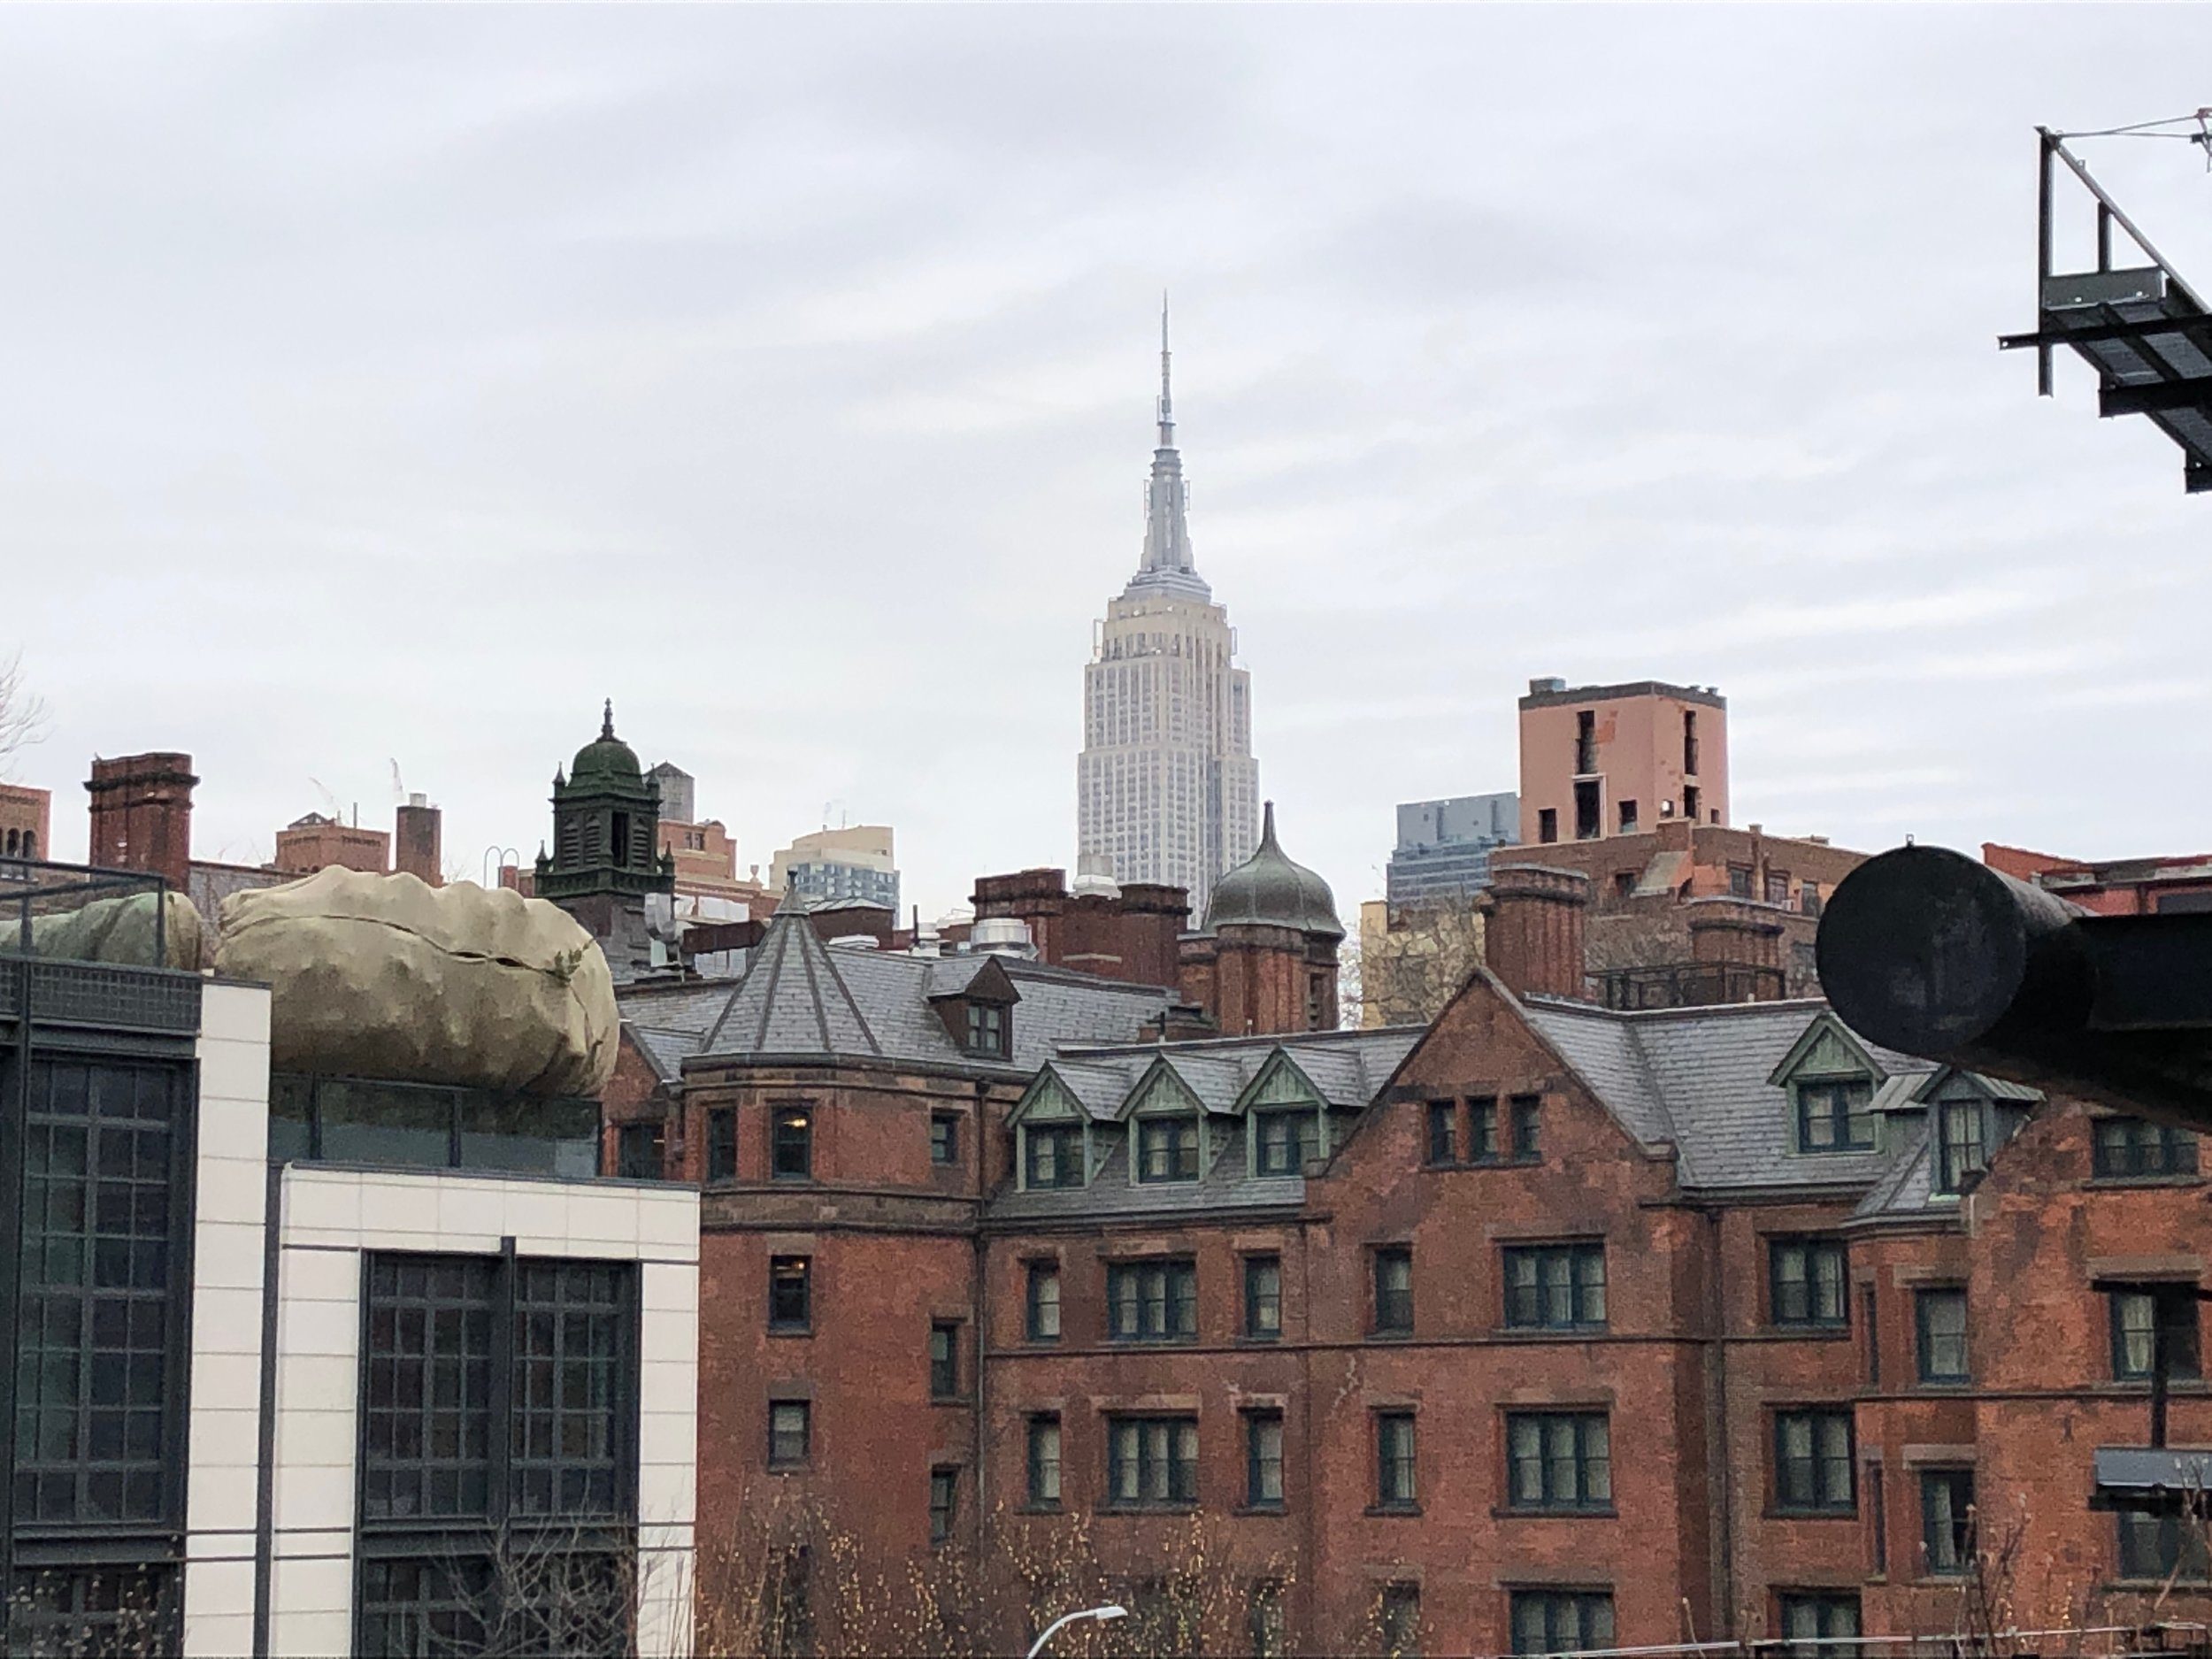 A view of the Empire State Building from the Highline